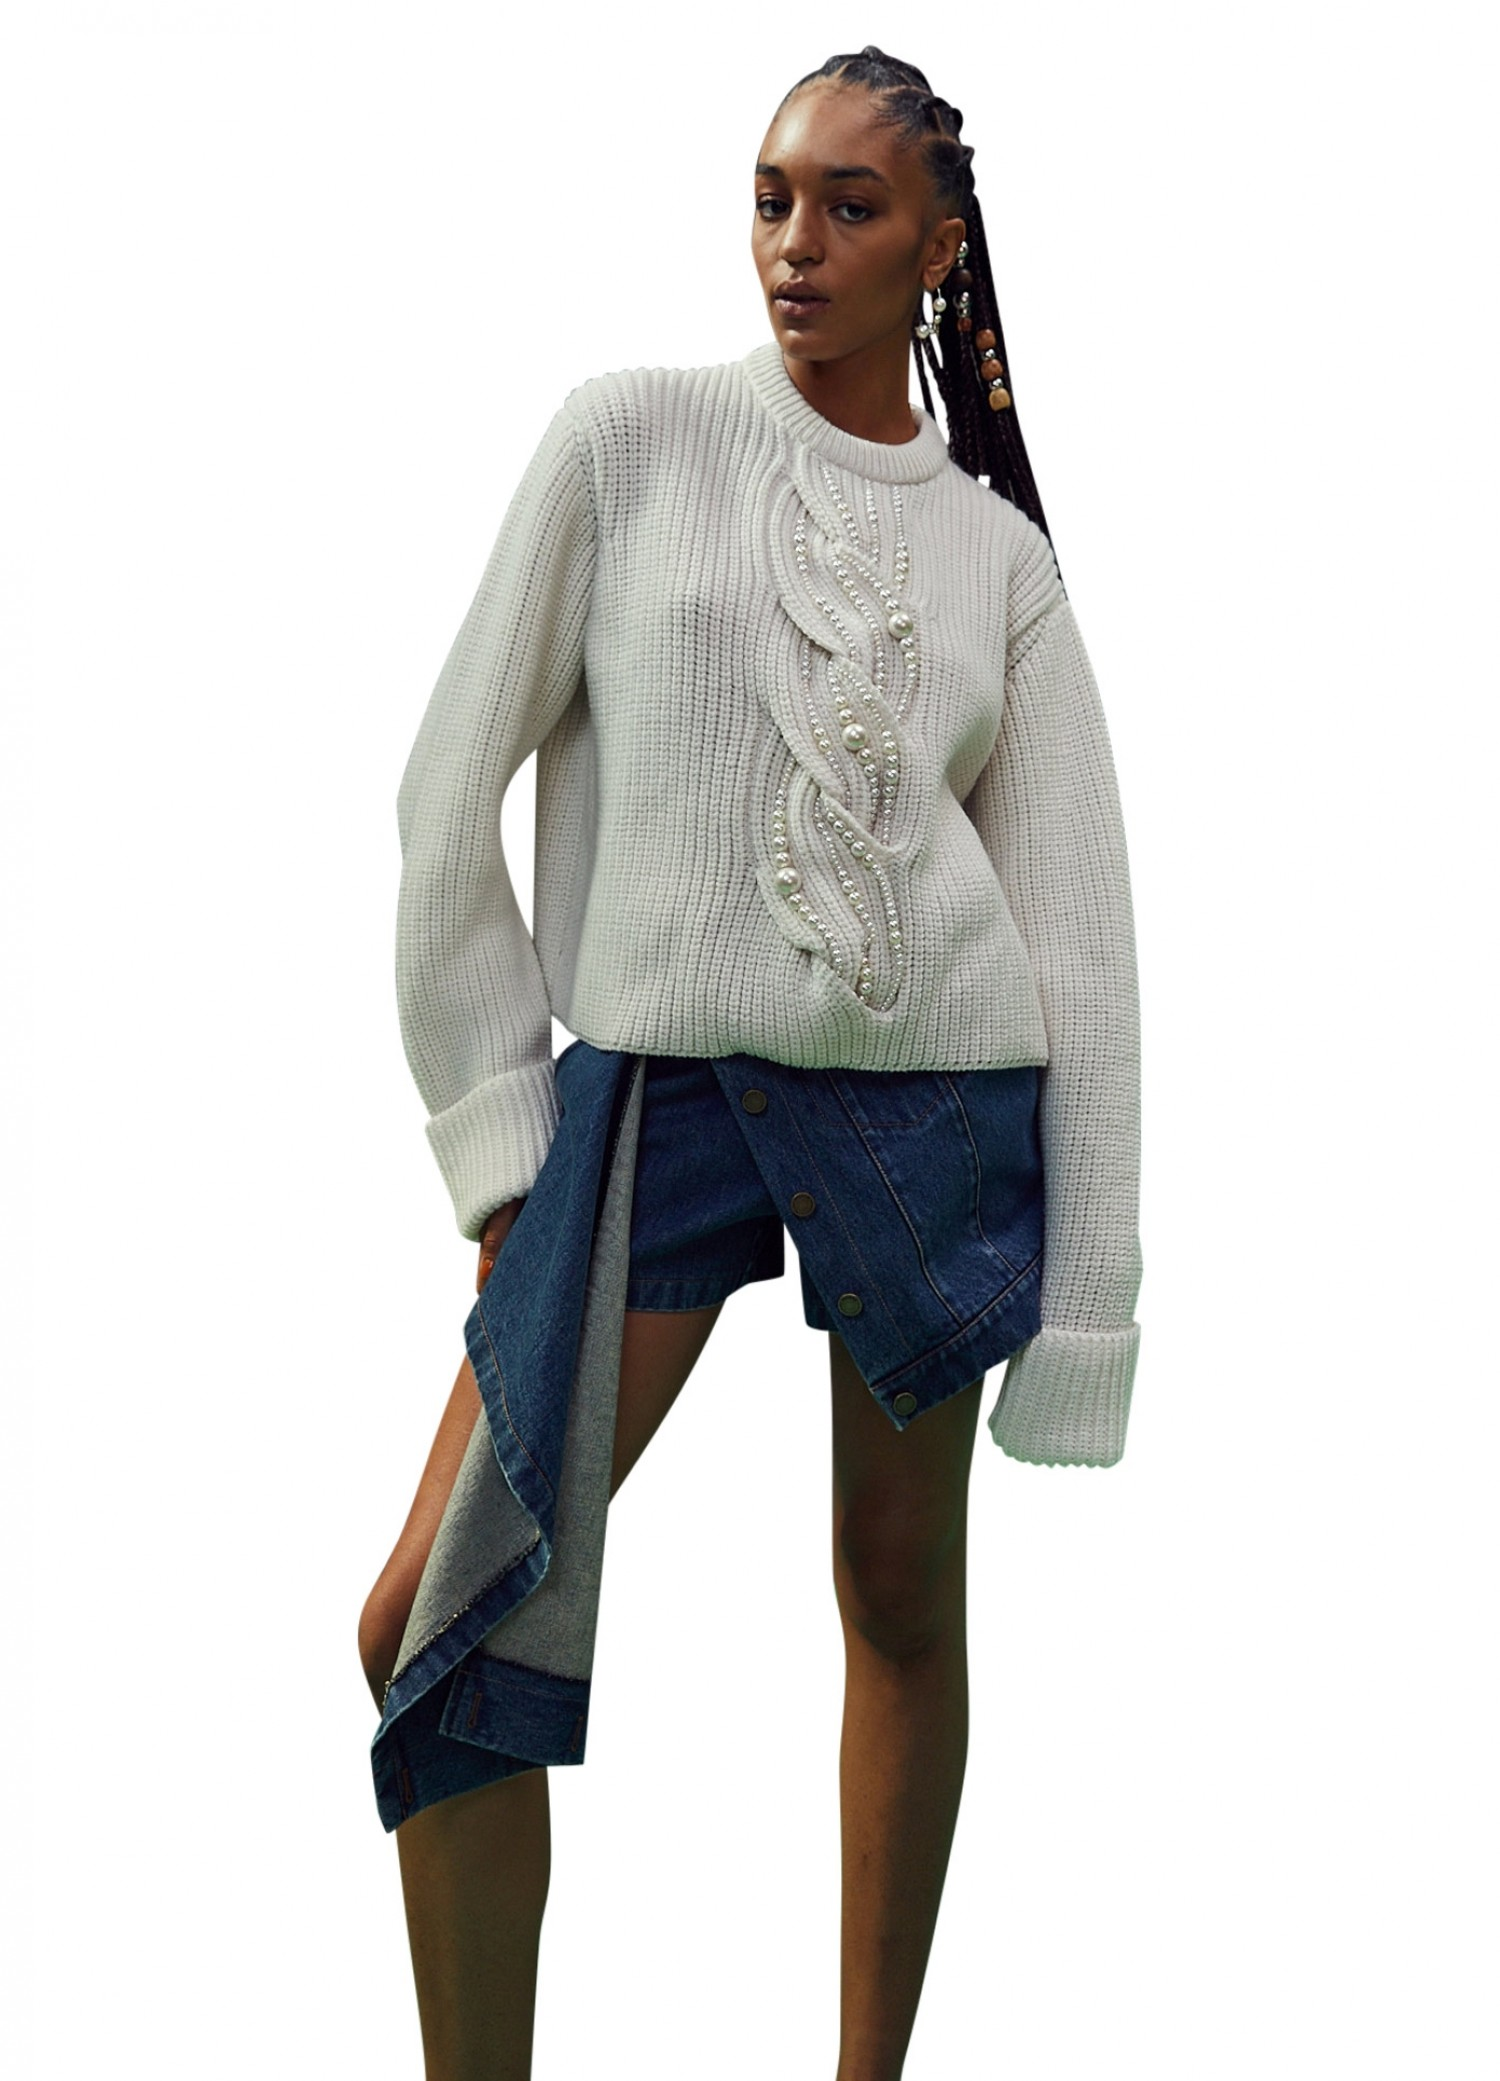 MONSE Pearl Cable Sweater in Ivory on Model with No Background Front